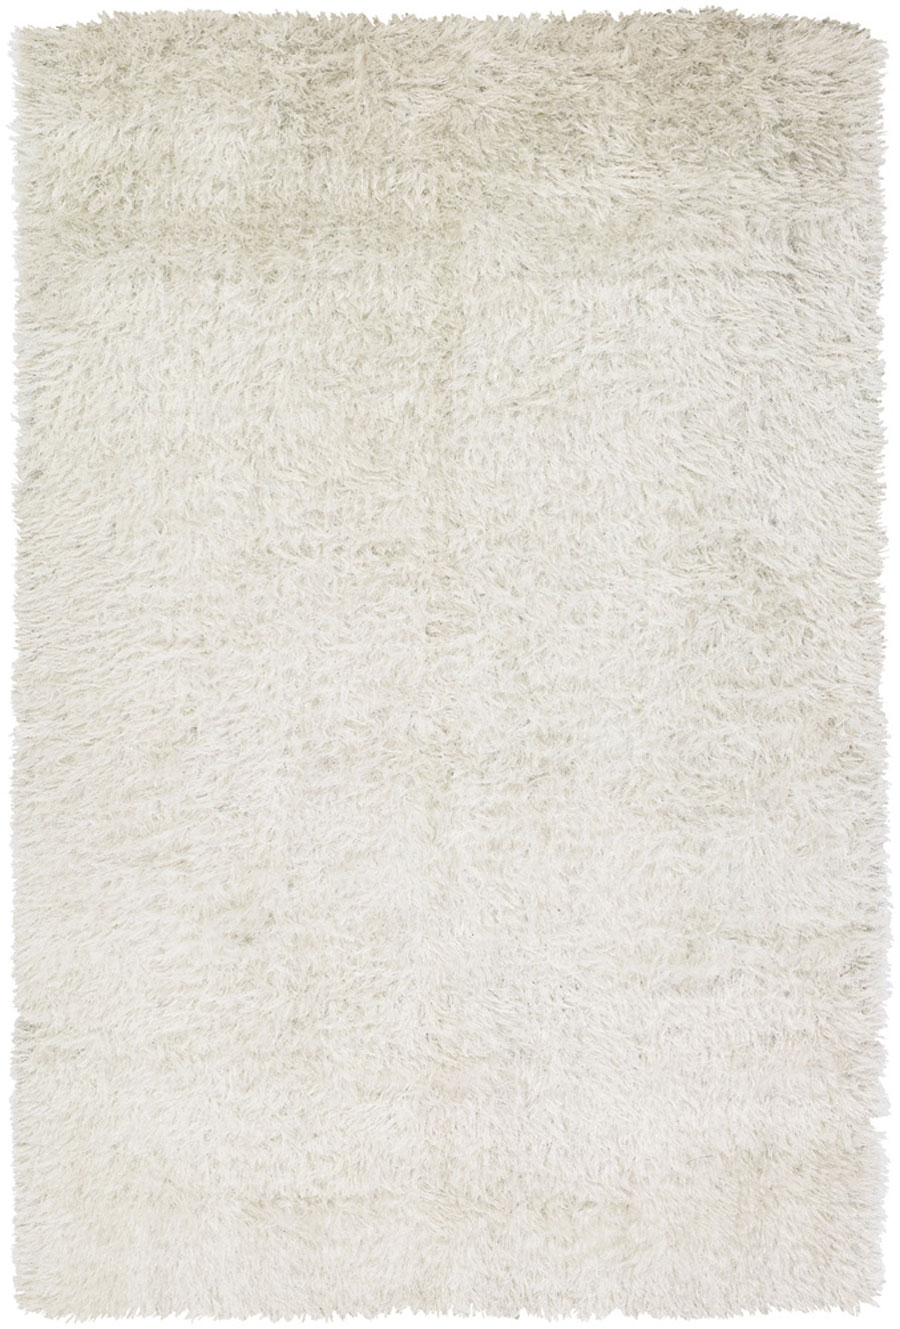 Chandra Oyster OYS23600 Area Rug